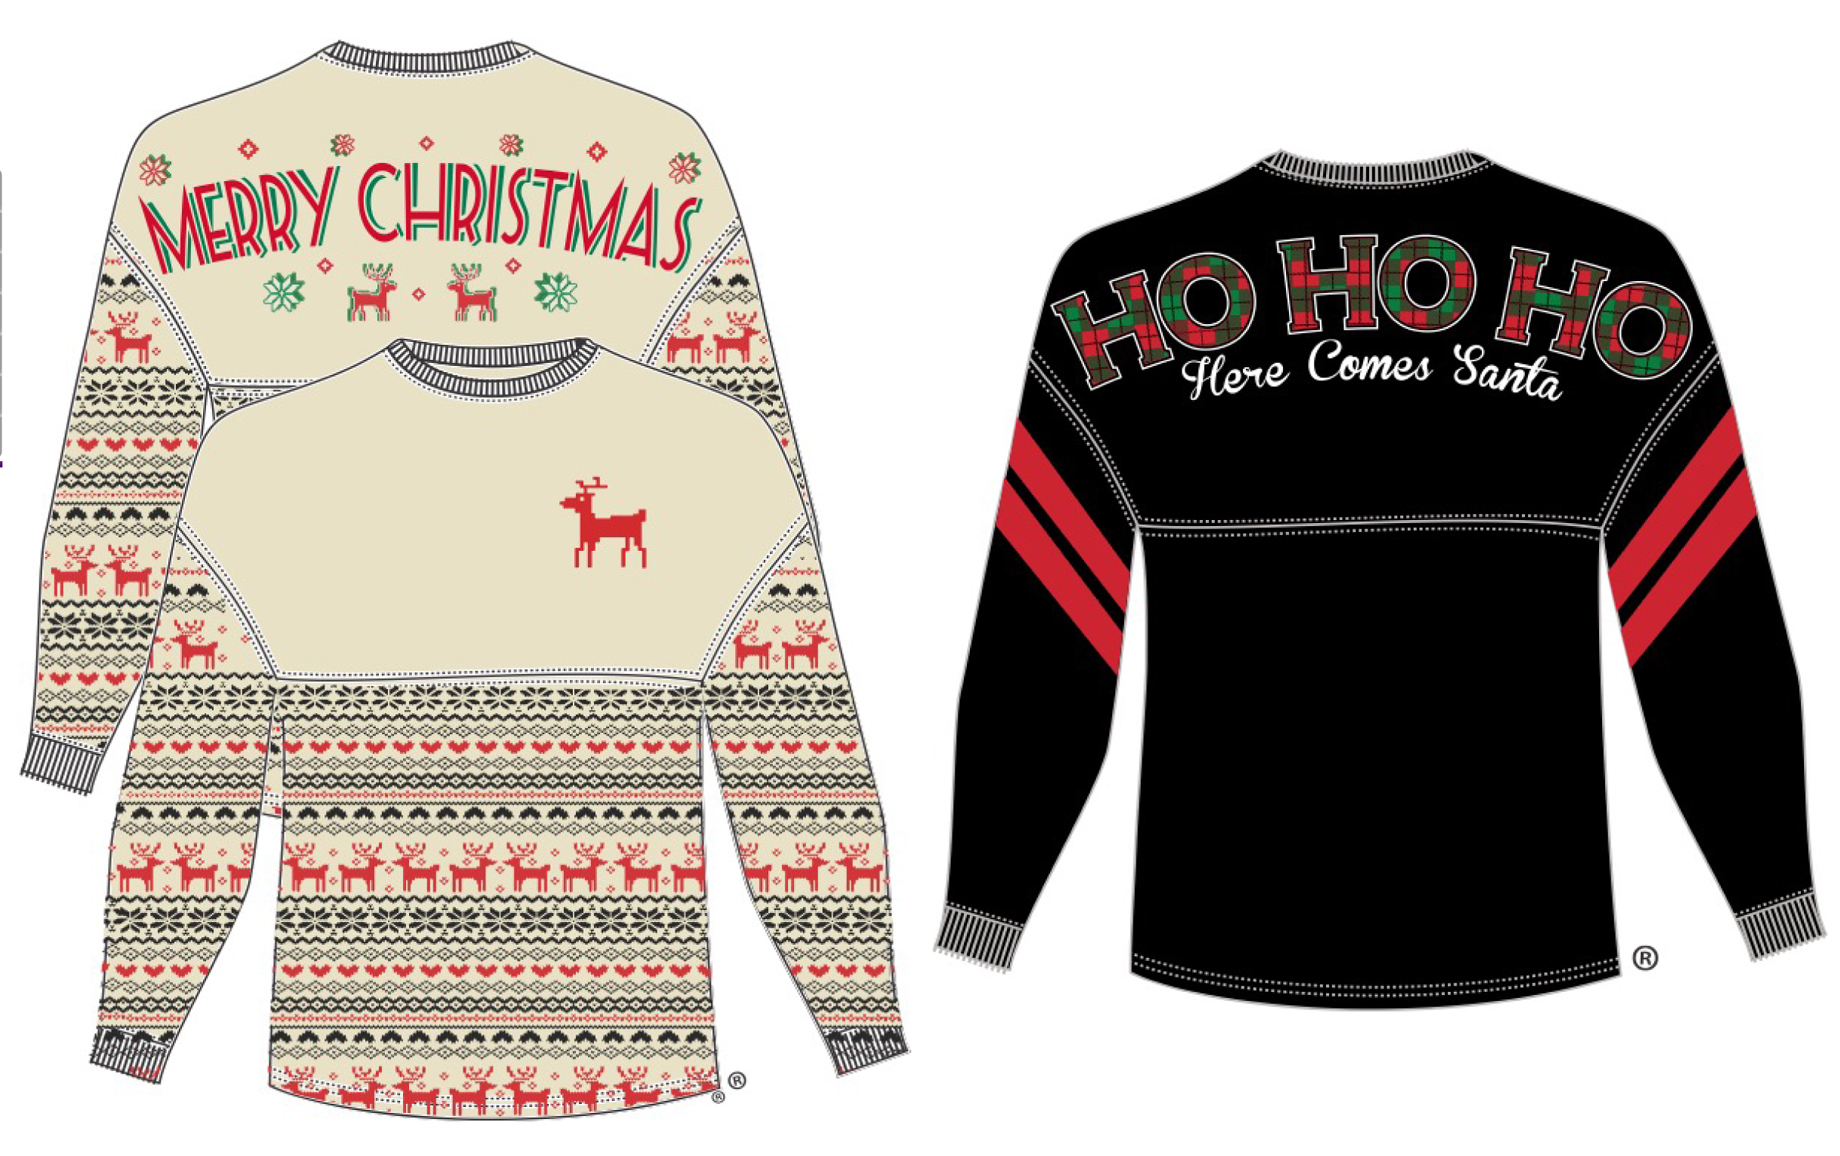 Christmas Shirts by B. Whimsy